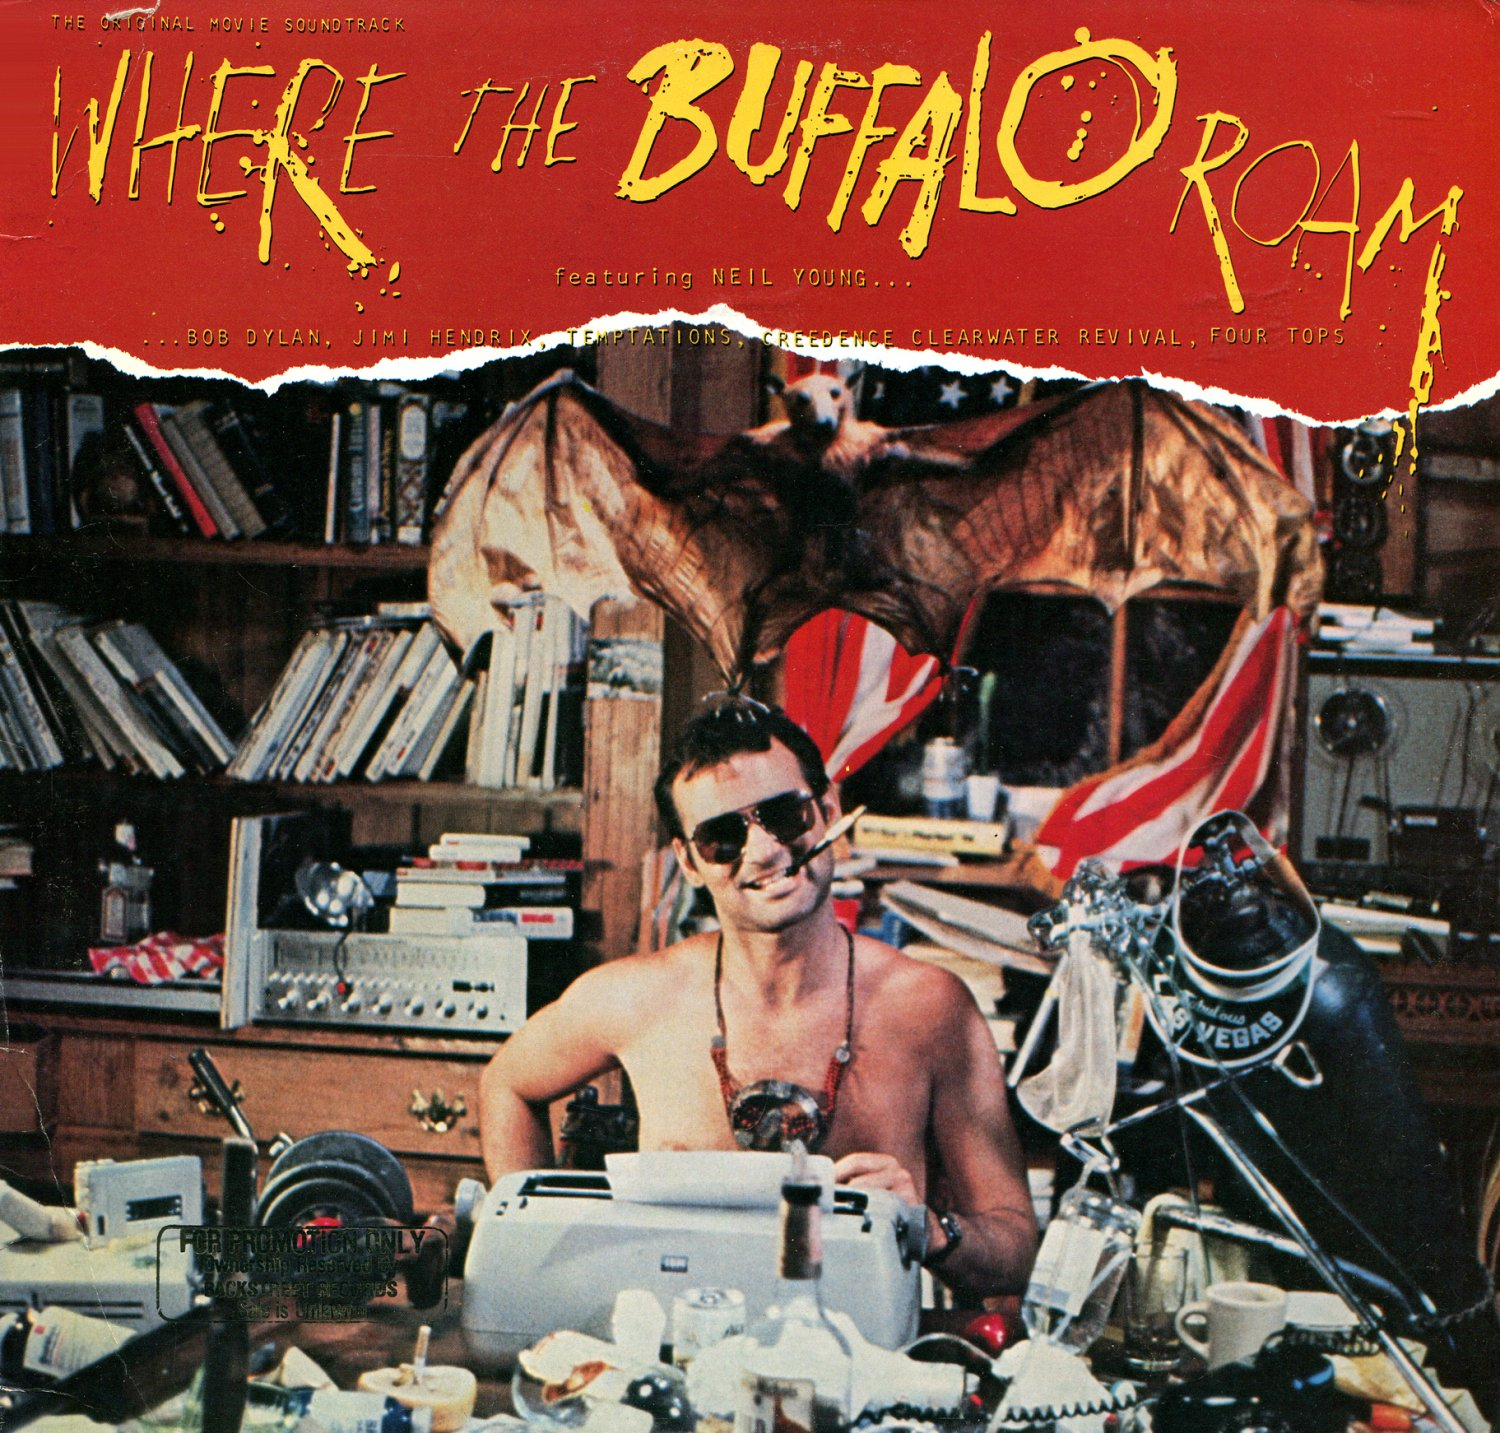 Where The Buffalo Roam - Original Soundtrack, Neil Young OST LP/CD